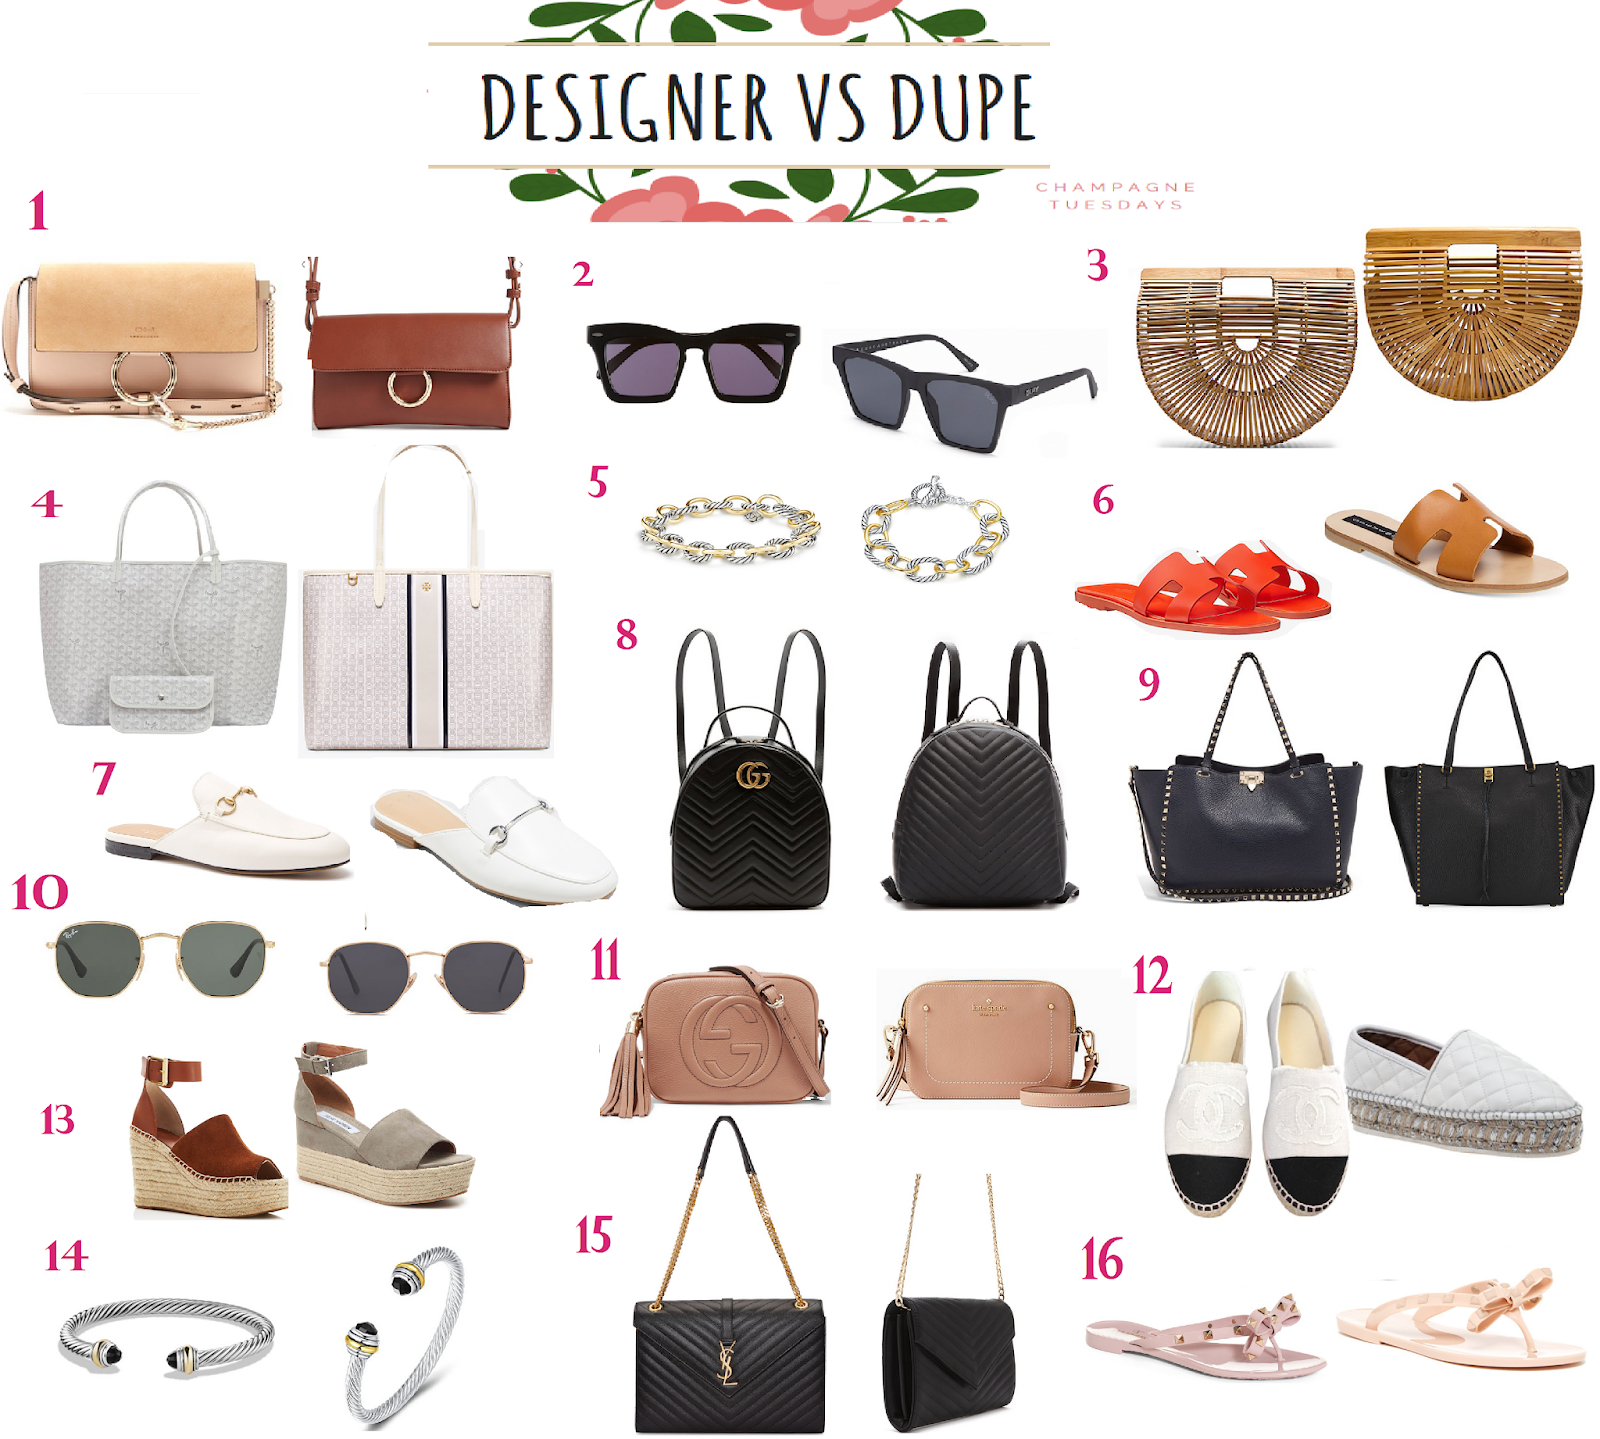 8c7d4c664fd Here it is people, the ULTIMATE round up of some of my favorite designer  items and their dupe look-alikes! I love to treat myself every now and  again (far ...